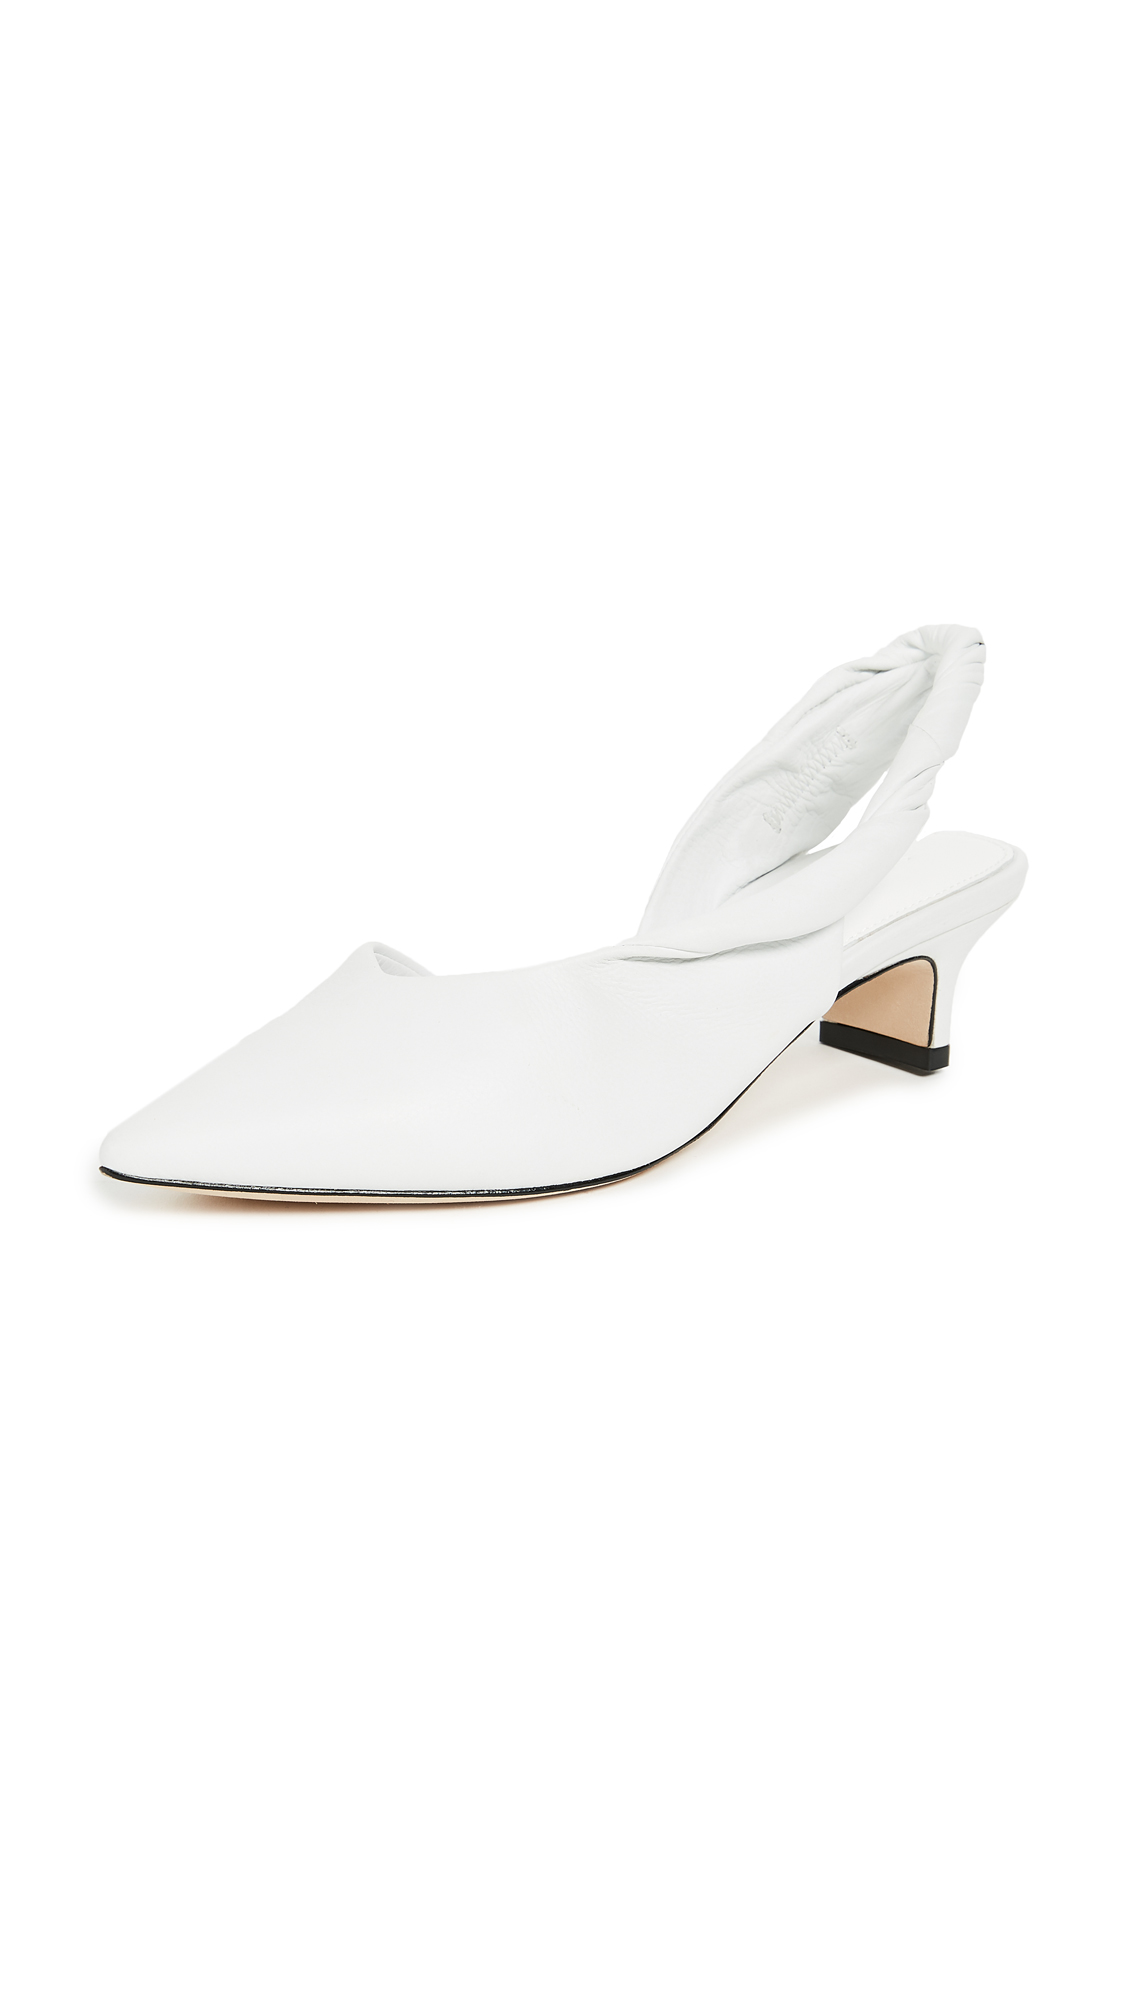 Sigerson Morrison Melina Point Toe Slingbacks - White